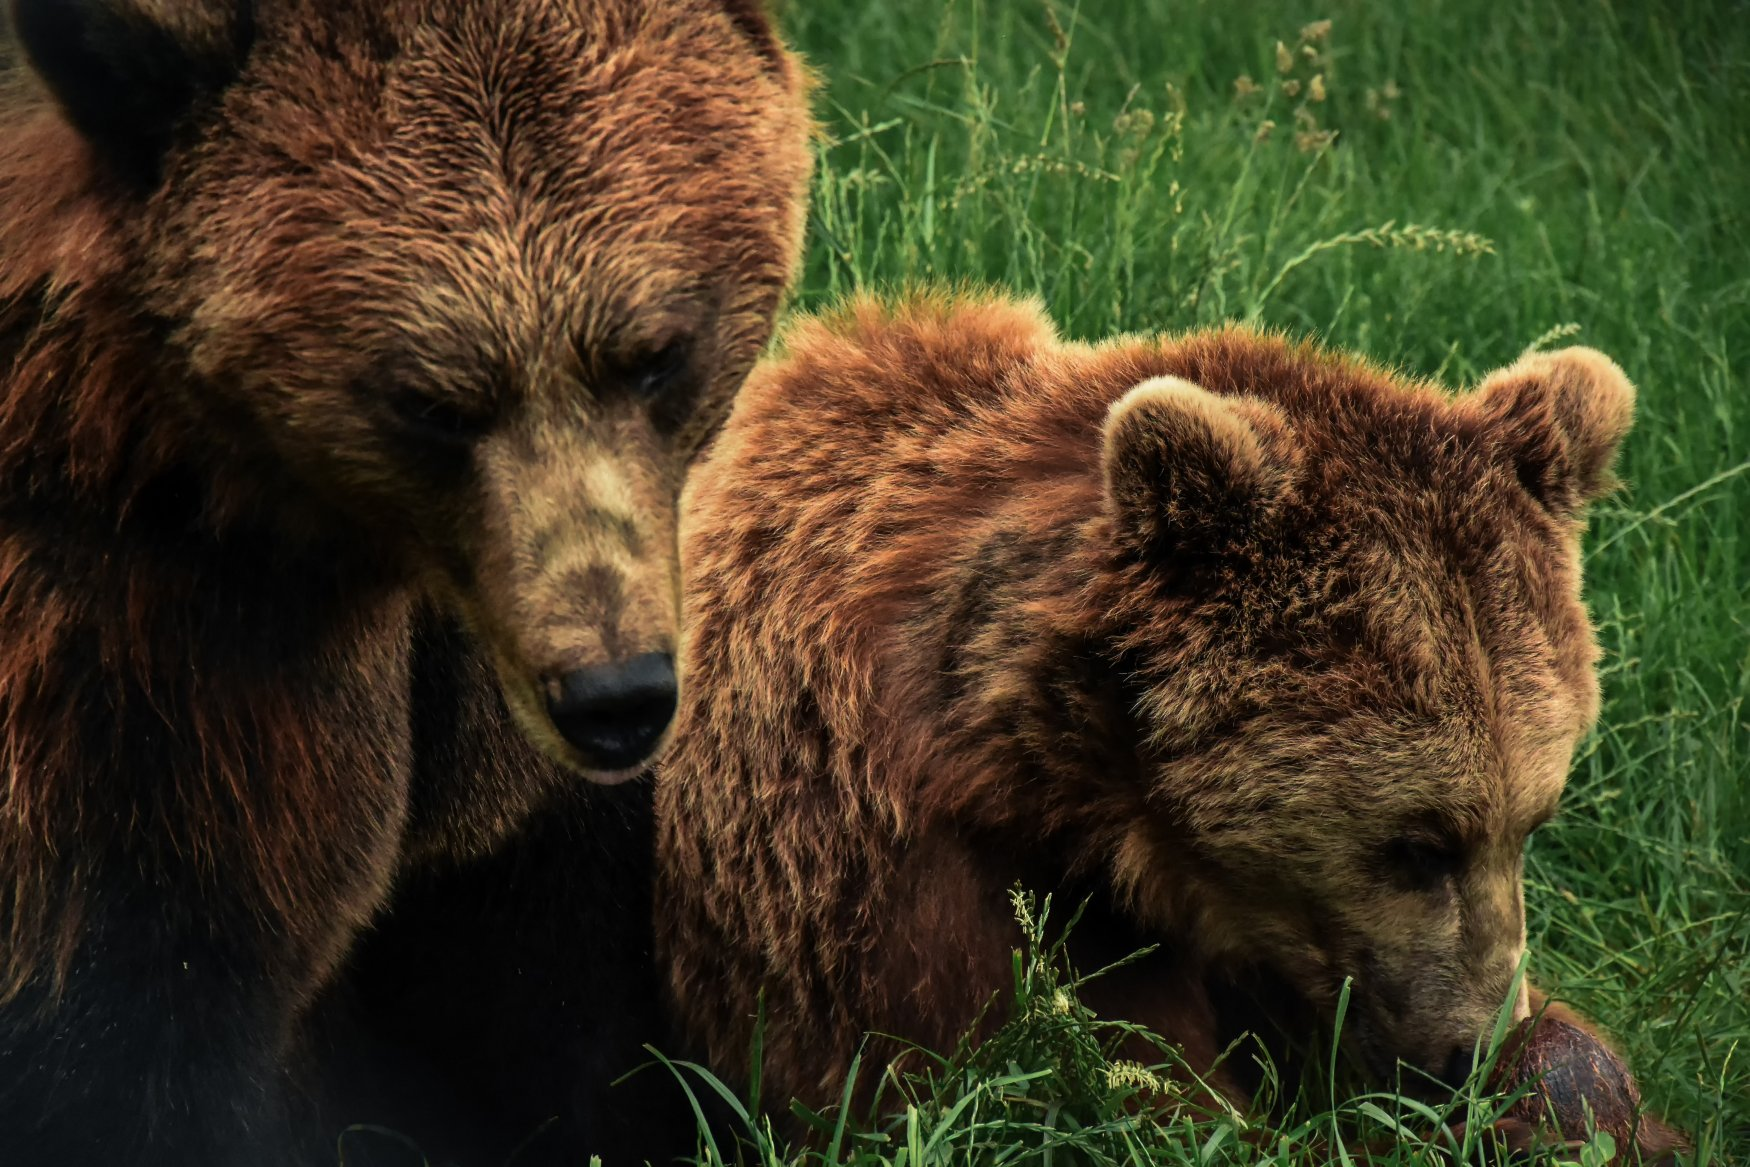 Student Report on Bears